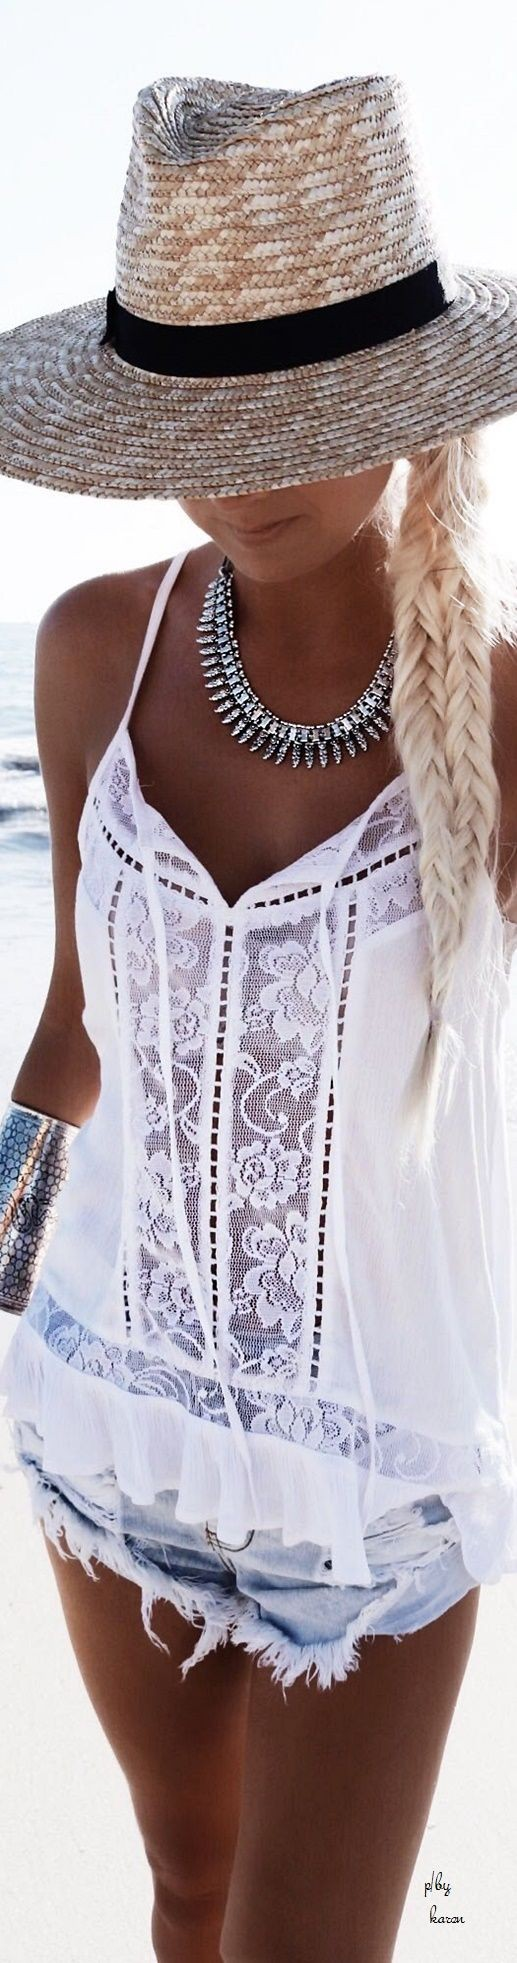 Denim, White Bohemian Lace Top, Hat and Braid.   (White lace & tan, can't beat it).